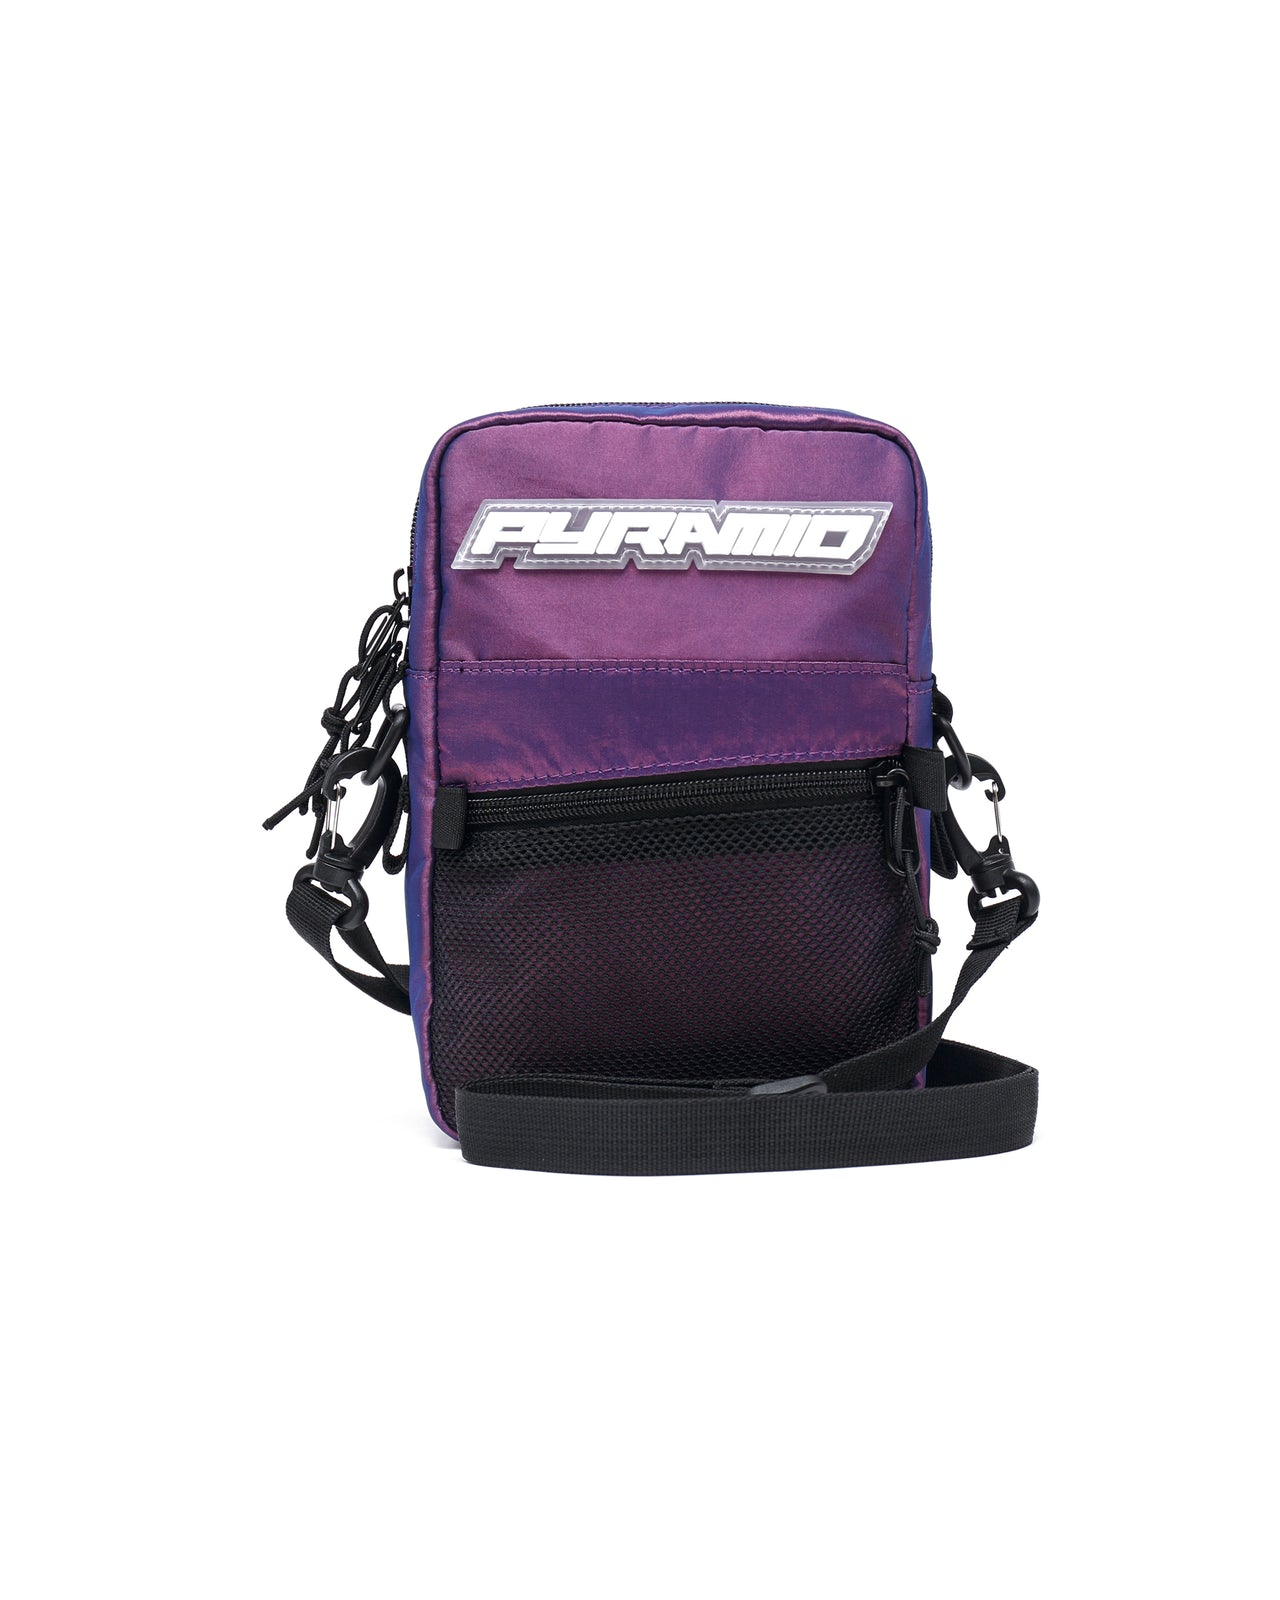 SMALL TECH SHOULDER BAG - Color: PURPLE